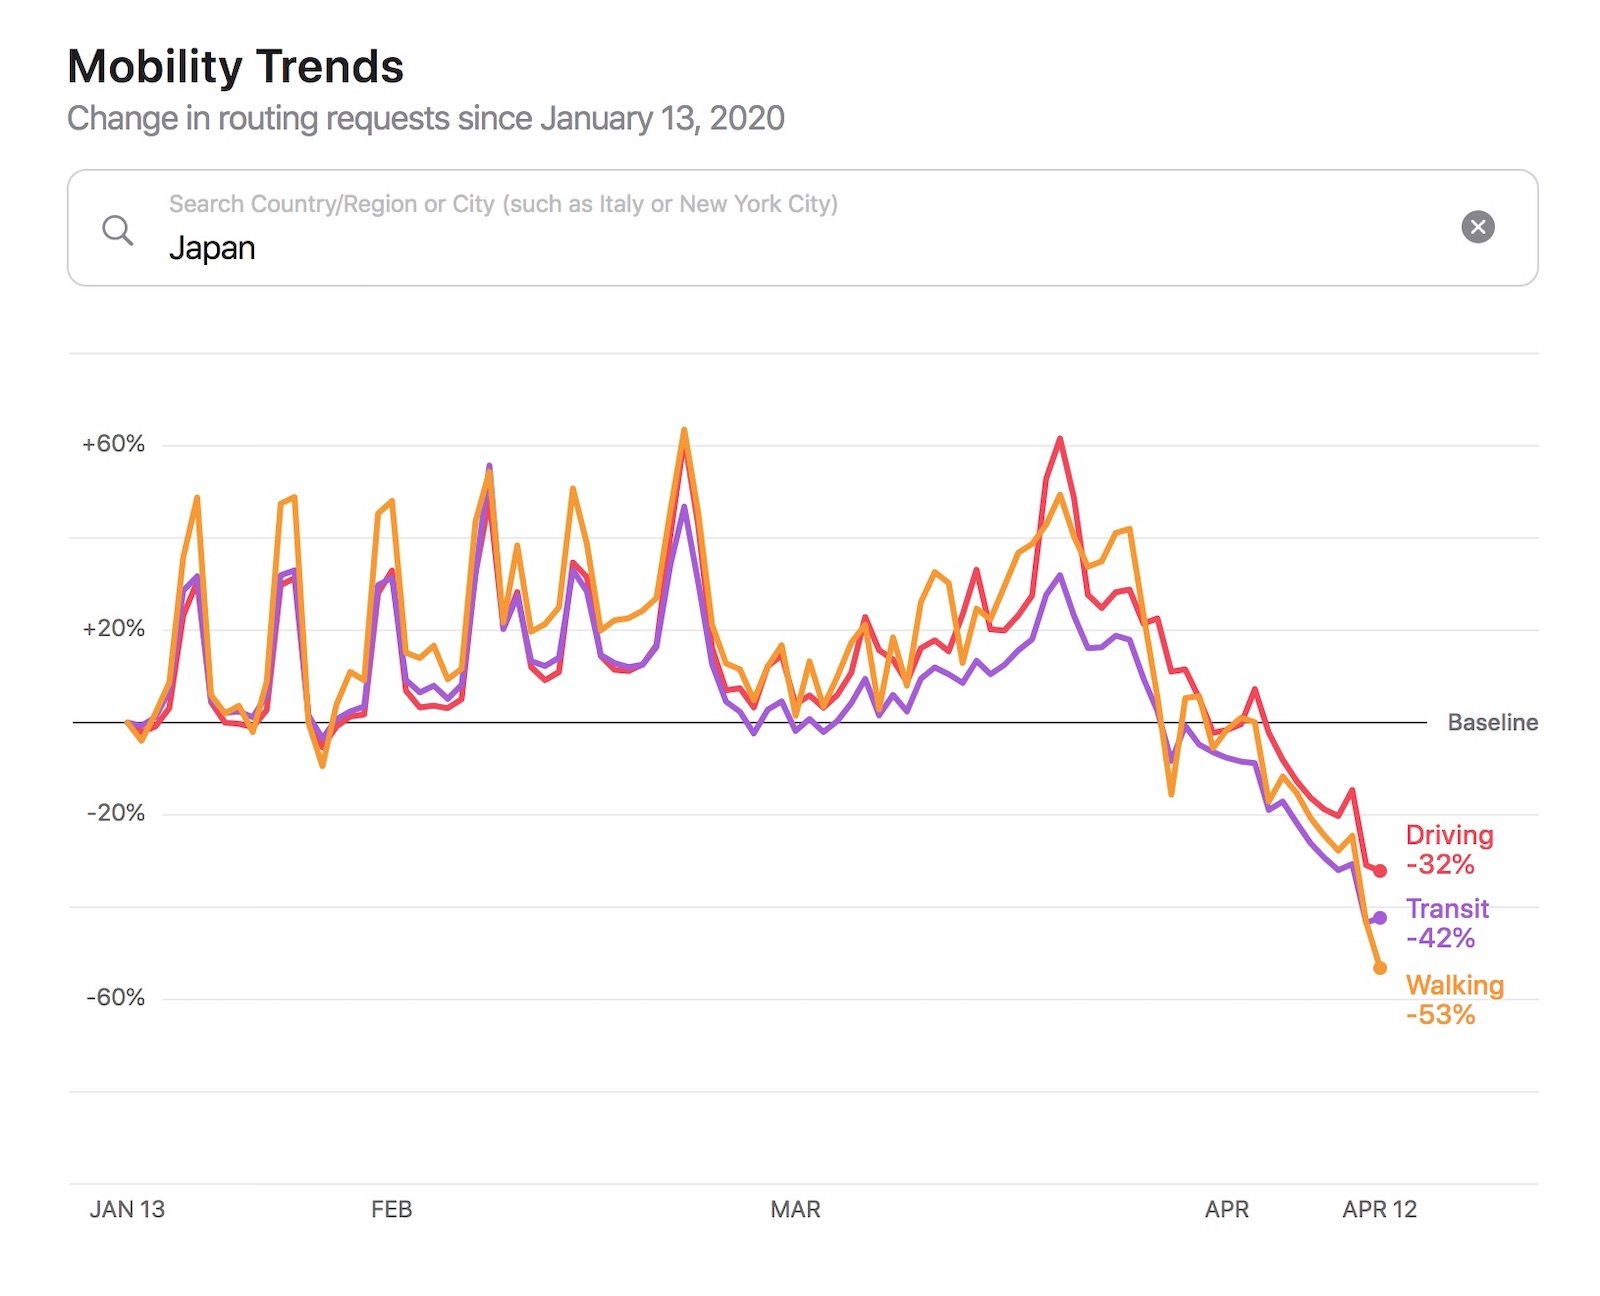 covid19-mobility-trend-report-japan-april14.jpg